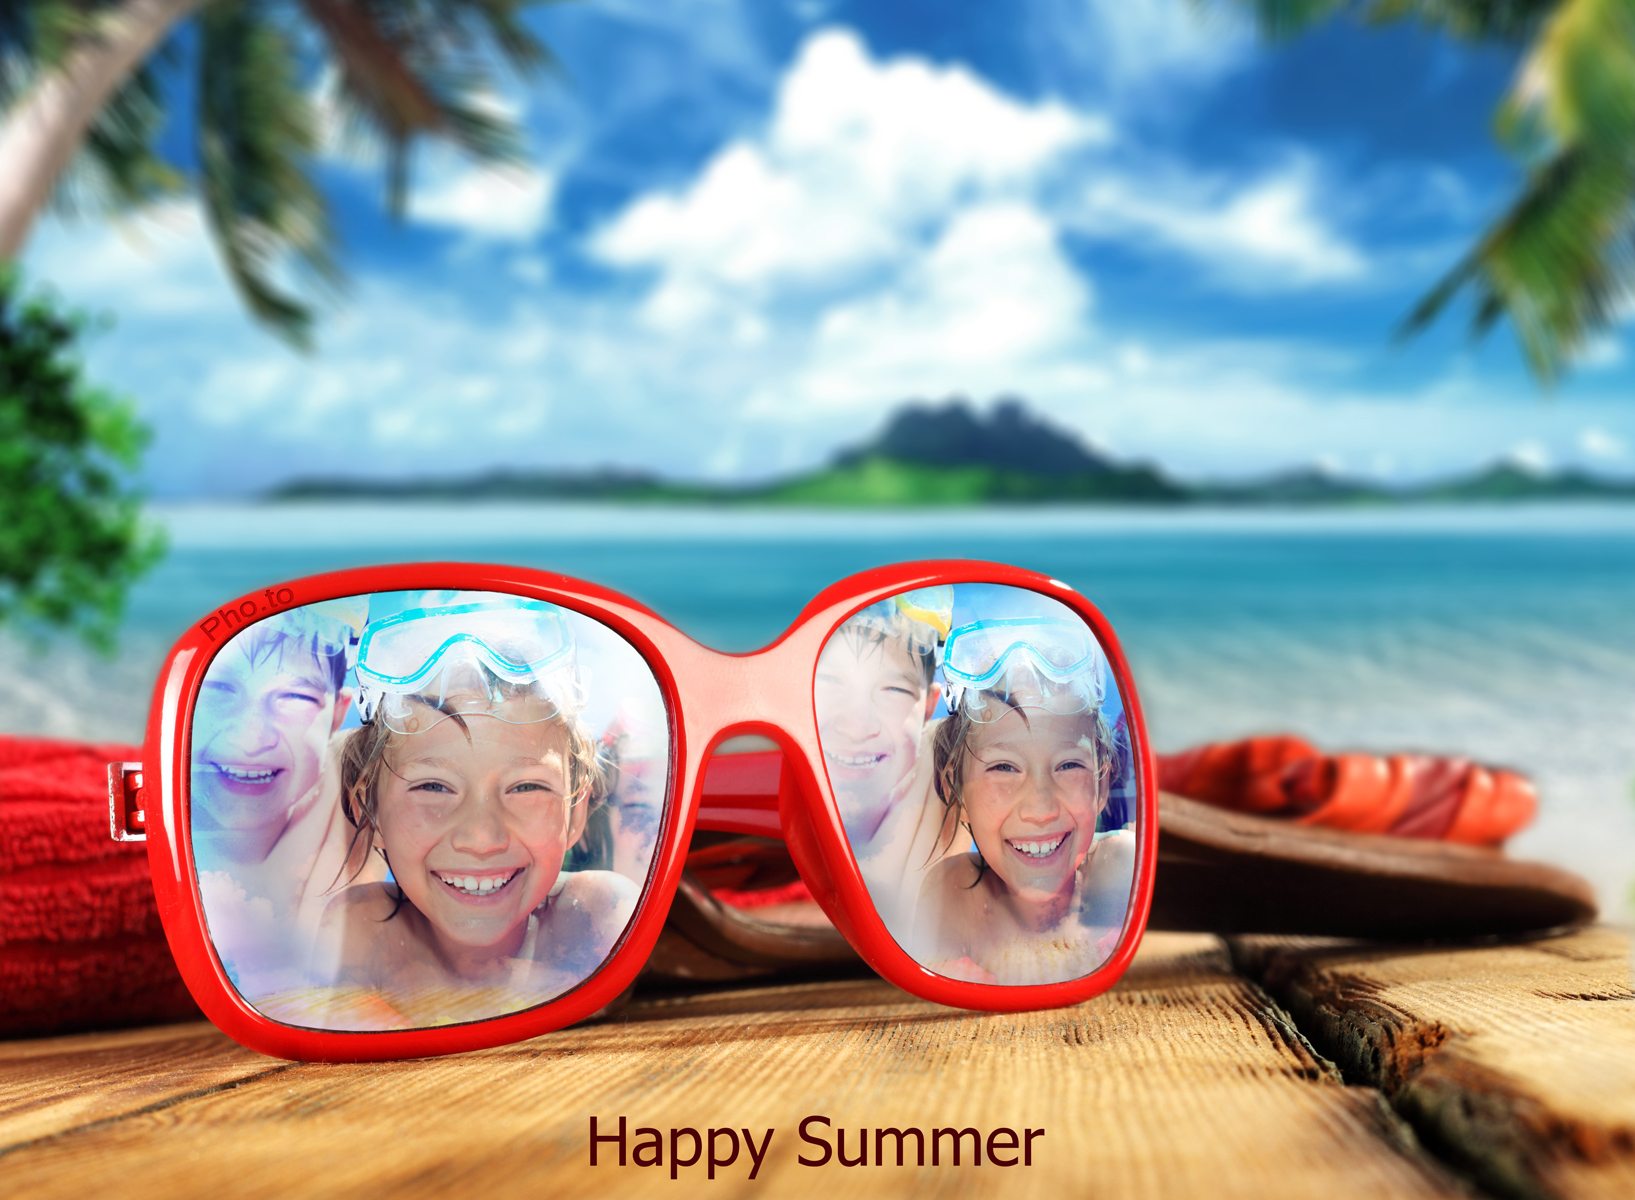 Vacation cover photo with sunglasses picture frame applied